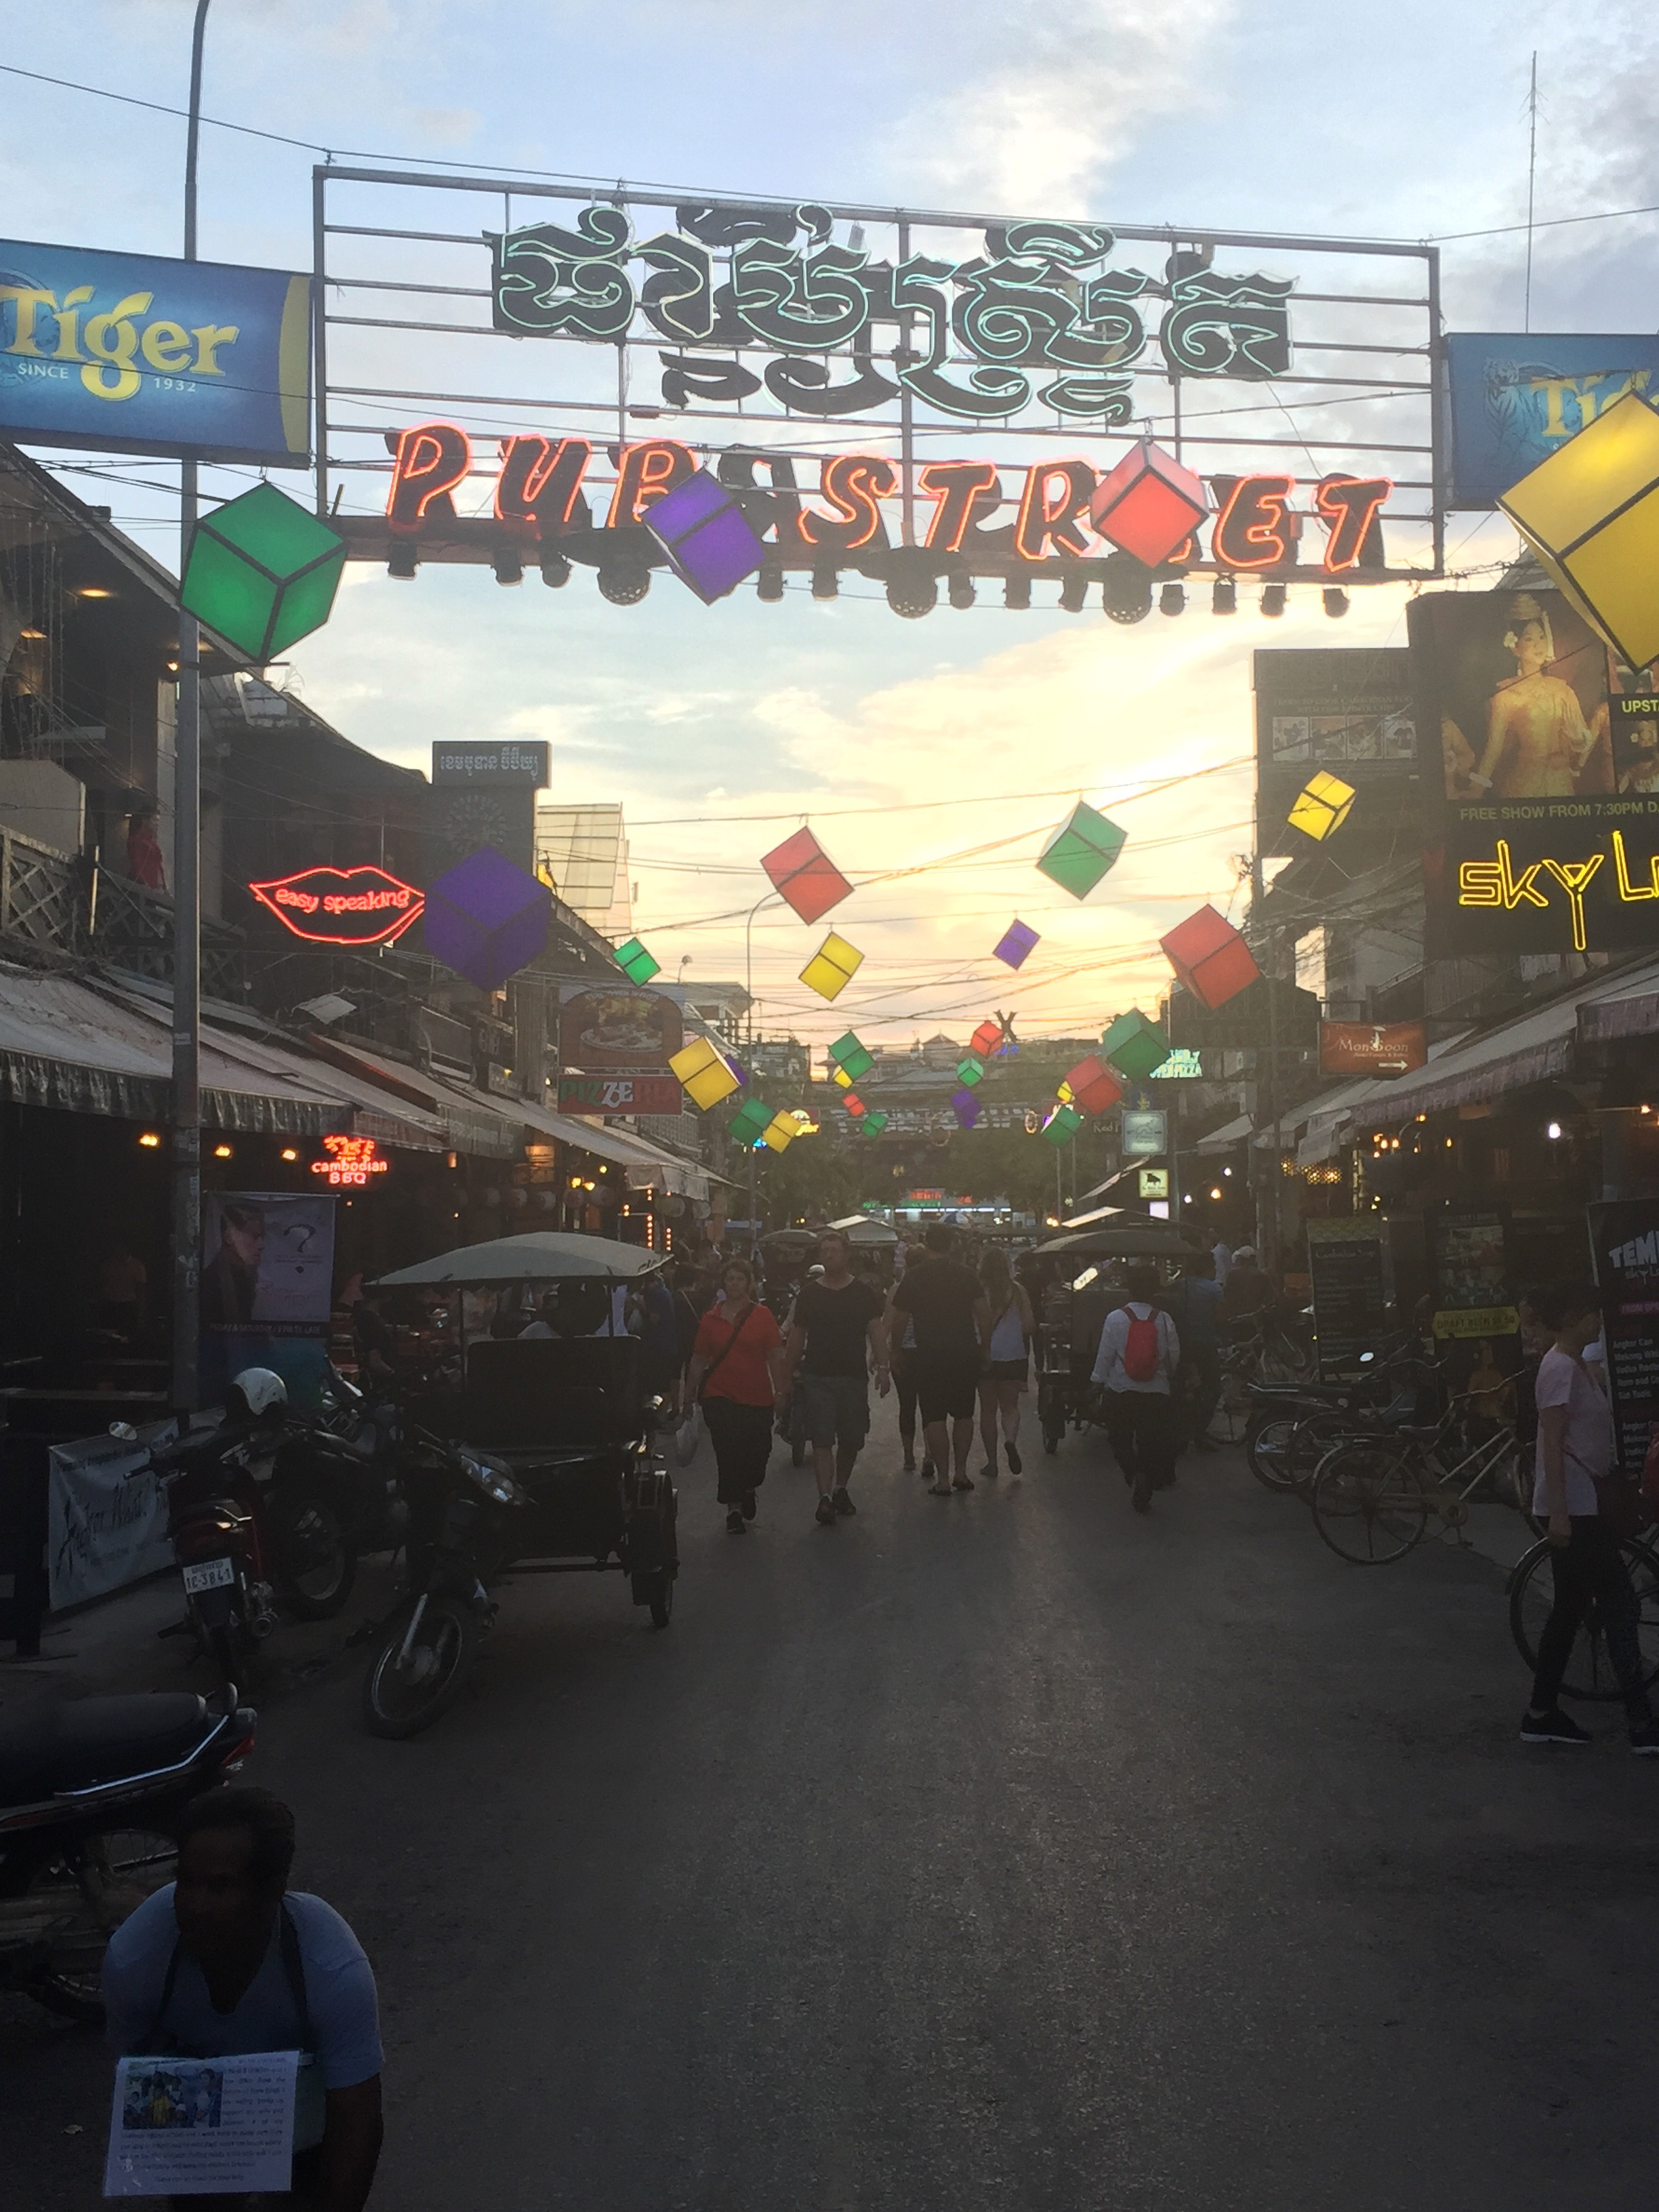 Pub Street Is Such A Fun Way To Spend The Evening After Exploring Temples In Siem Reap, Cambodia